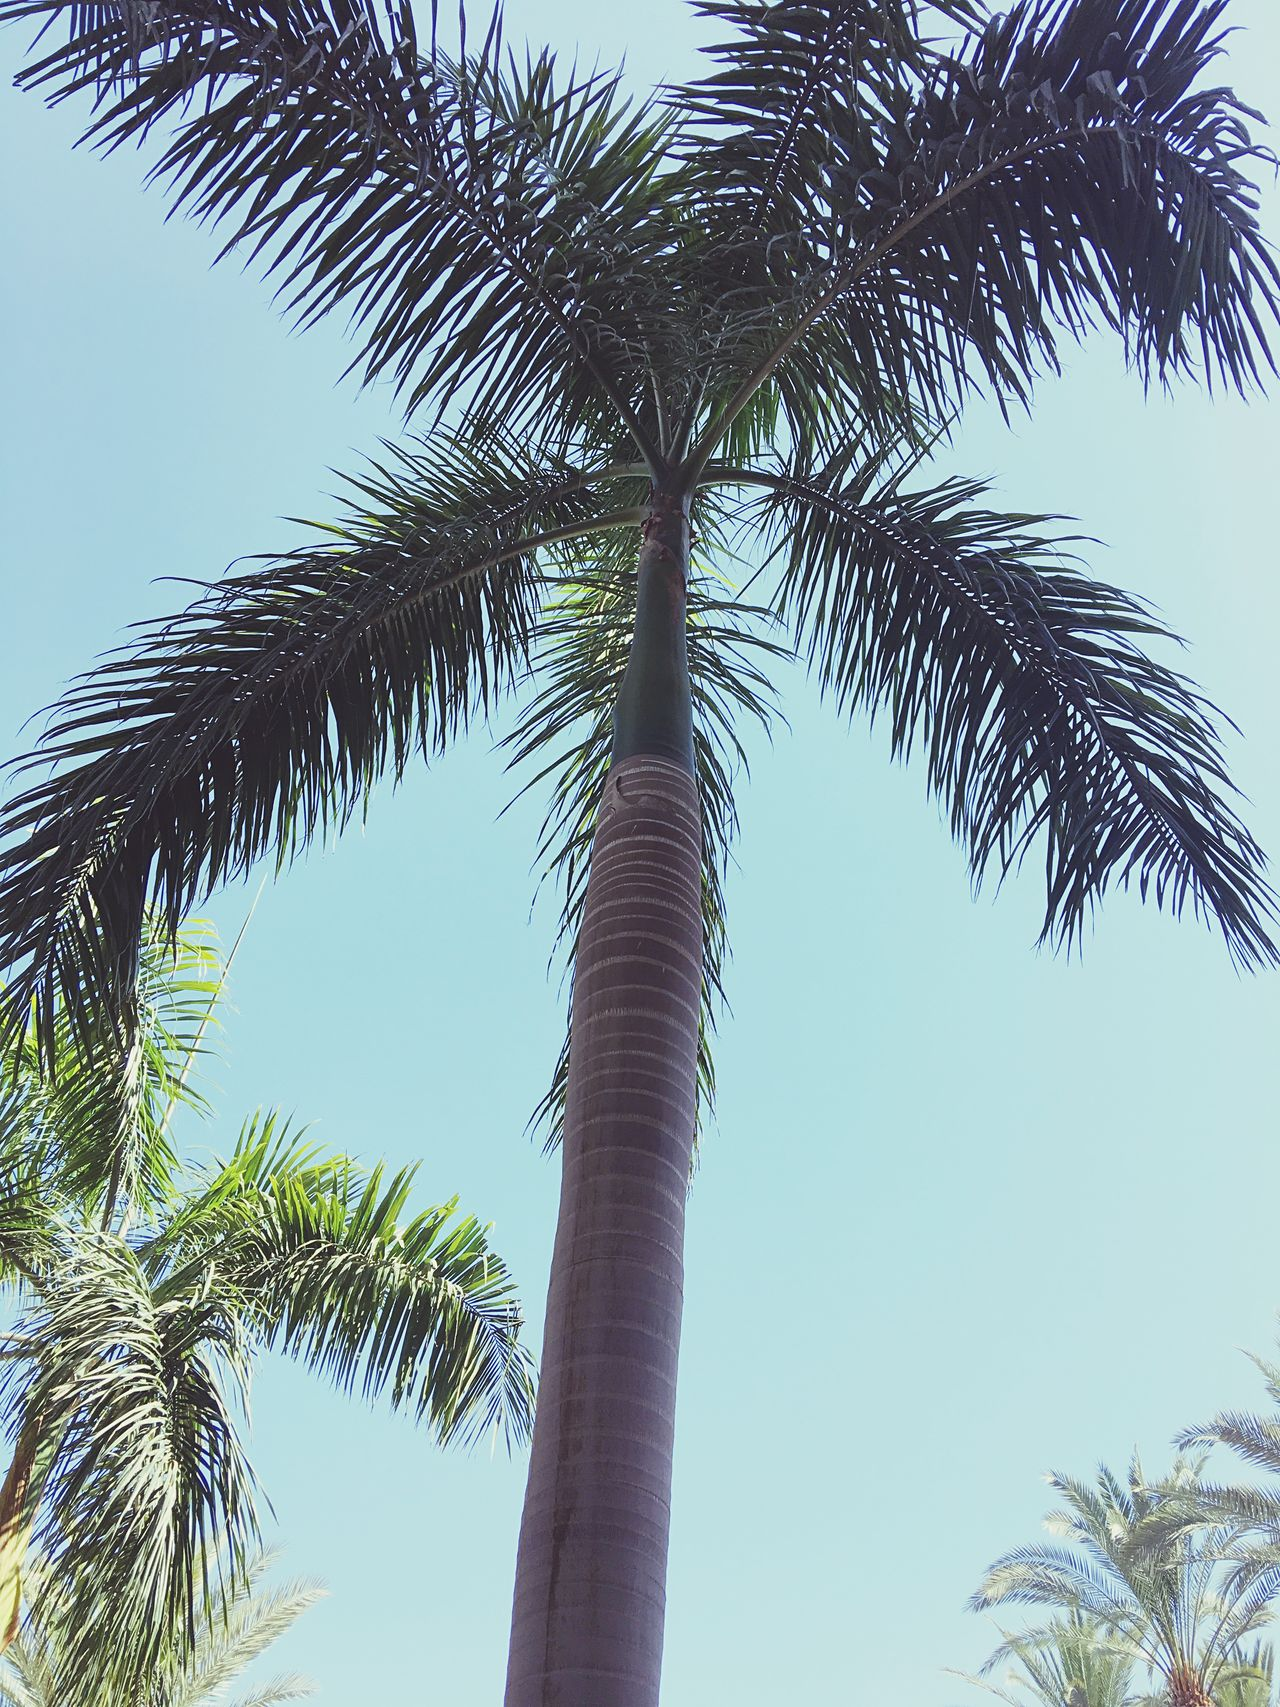 Palm Tree Tree Tree Trunk Low Angle View Palm Frond Growth Day Tall Nature Outdoors Clear Sky Sky Leaf Beauty In Nature No People Branch Travel Vacations Summer Relaxation